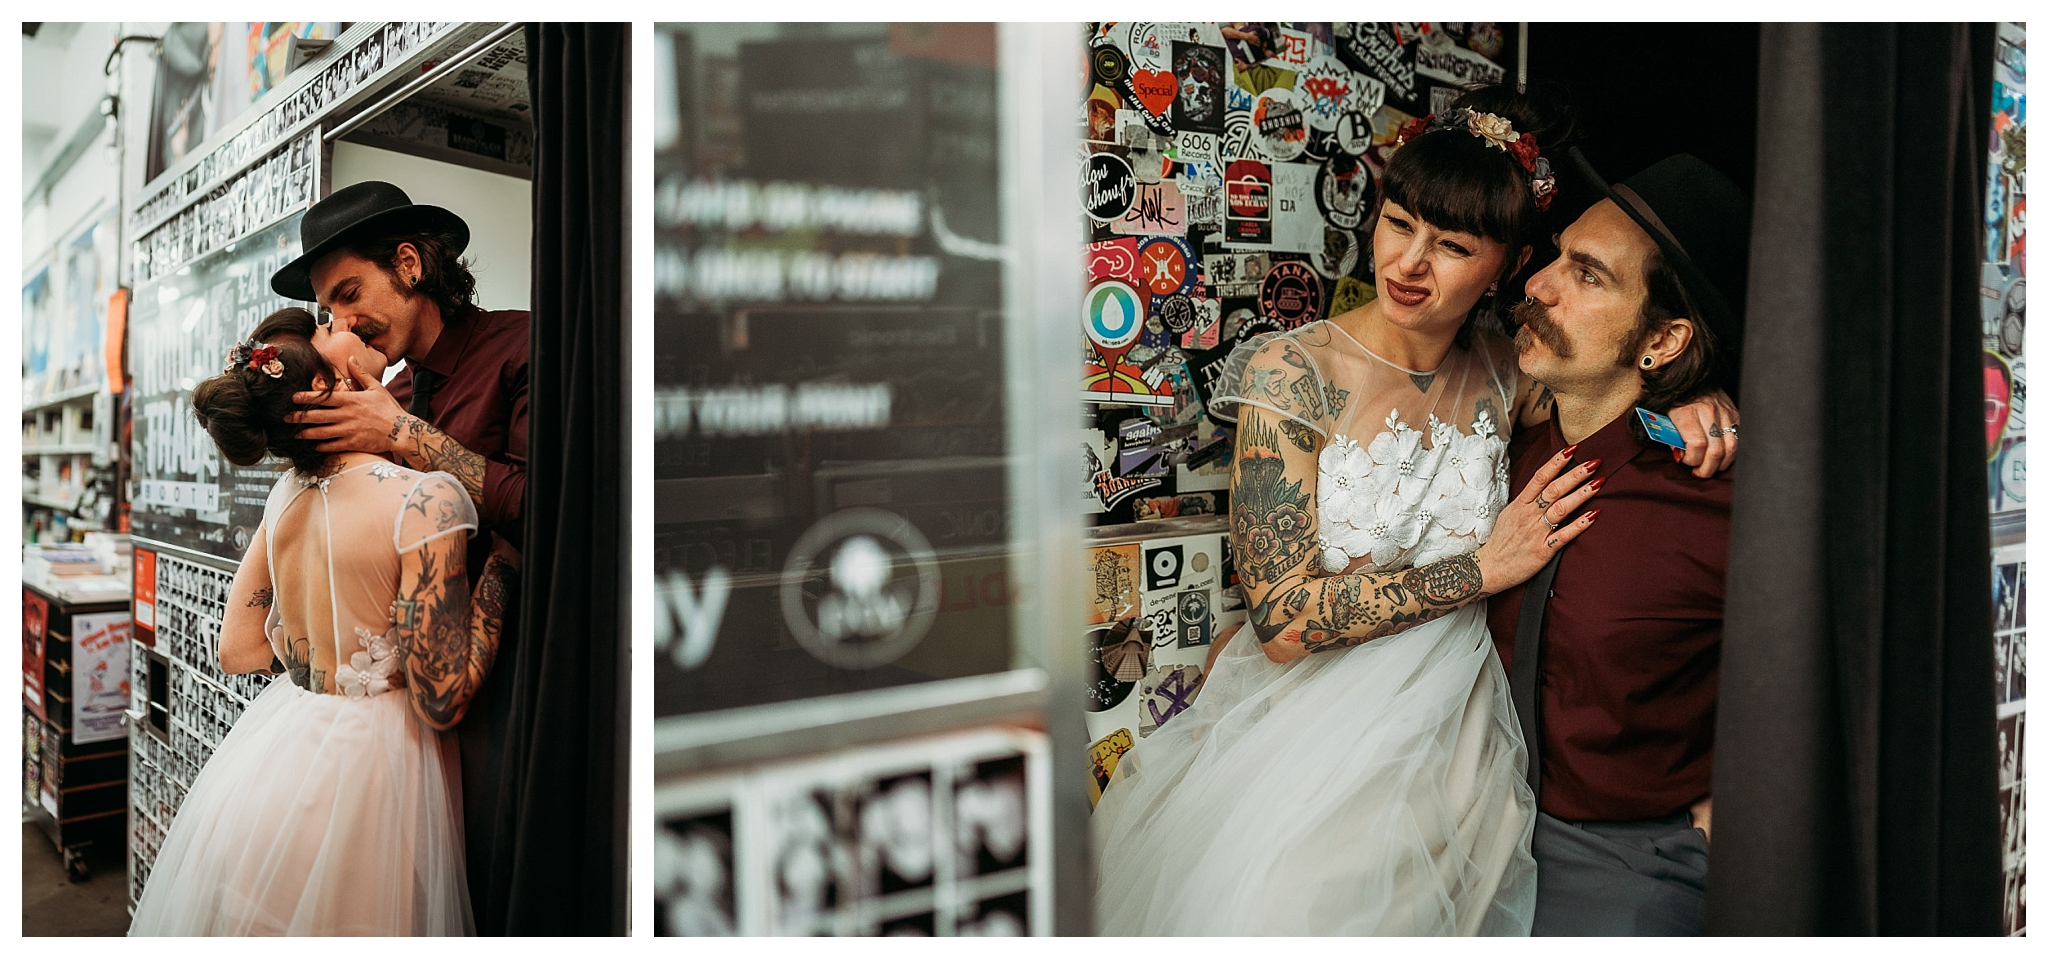 Eloepement photos in a photobooth in Rough Trade East